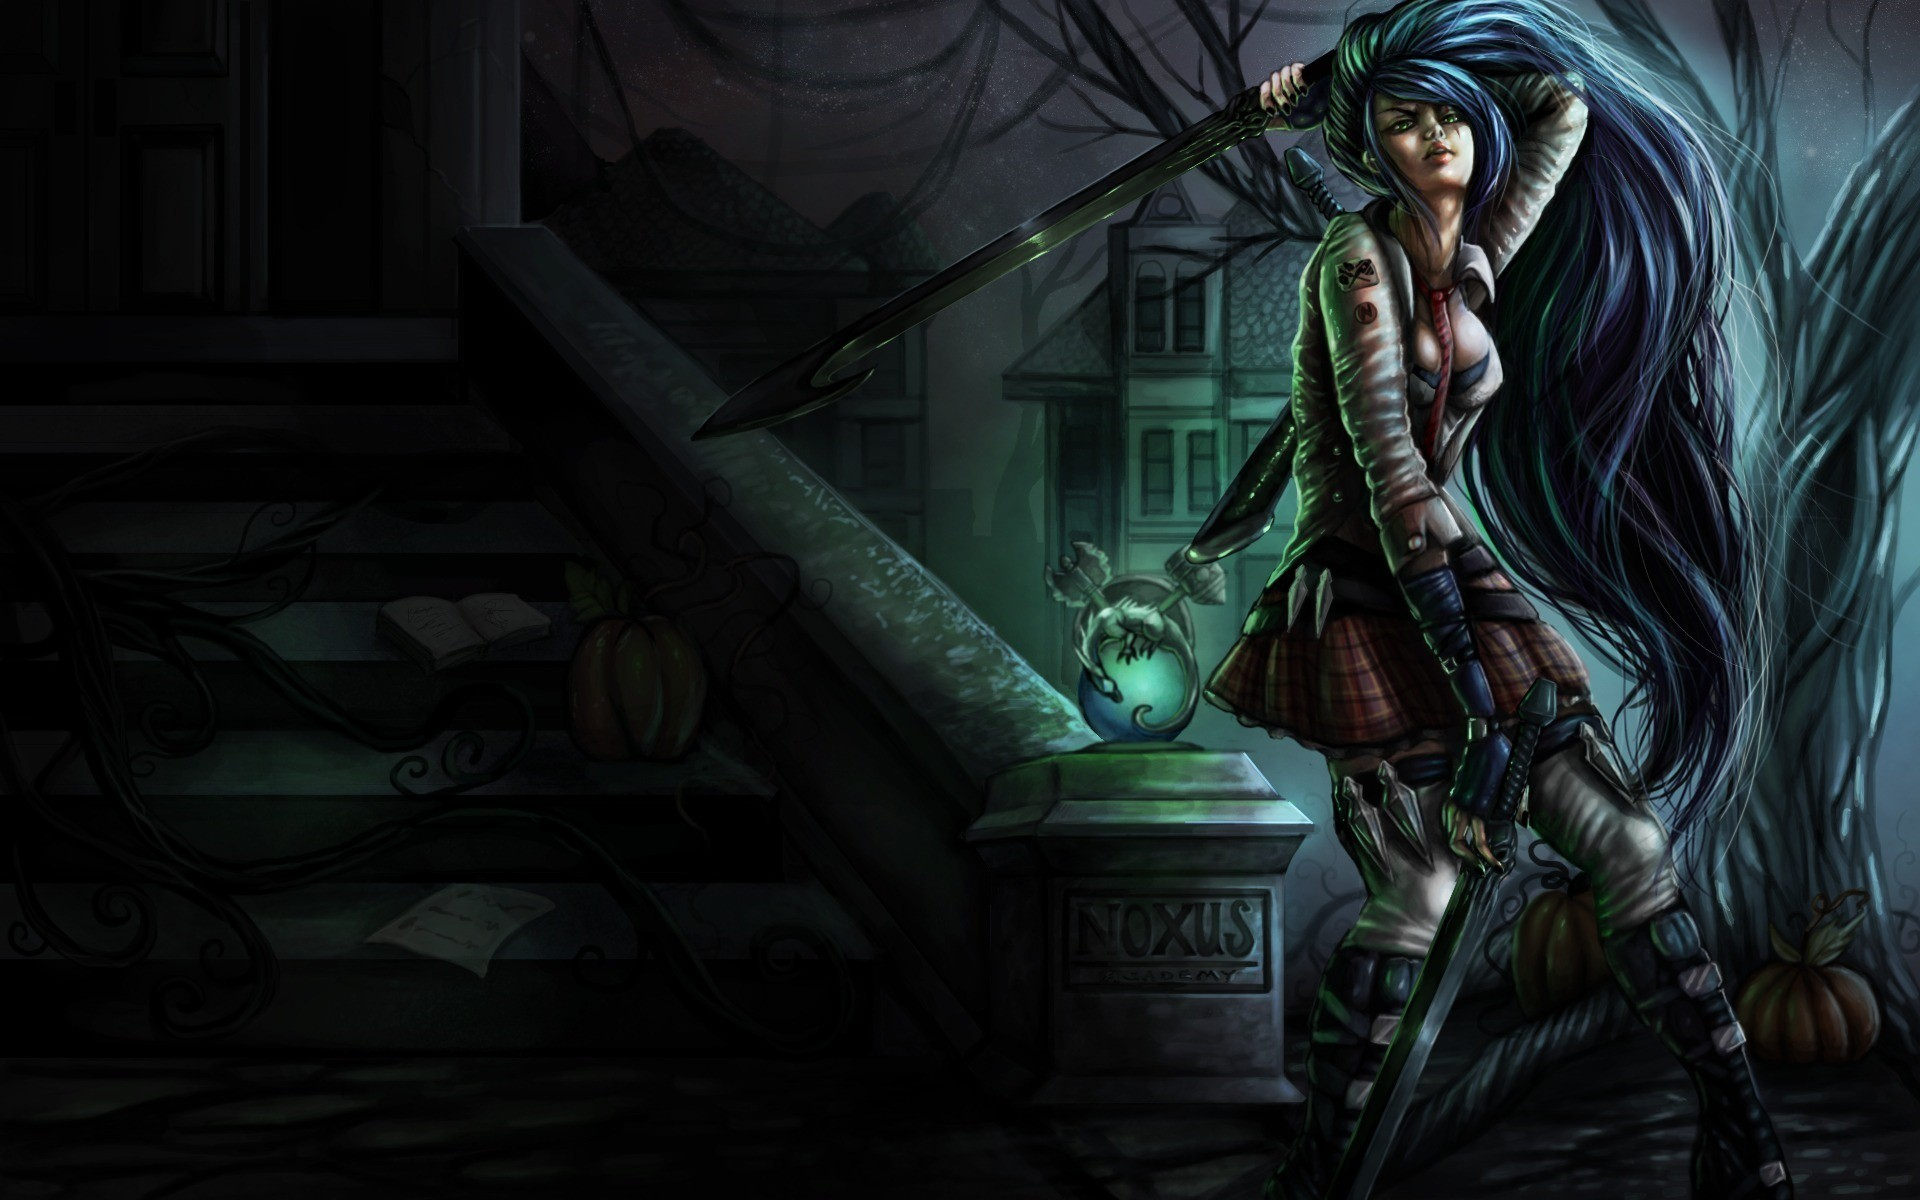 League of Legends Wallpaper HD Game Background Games